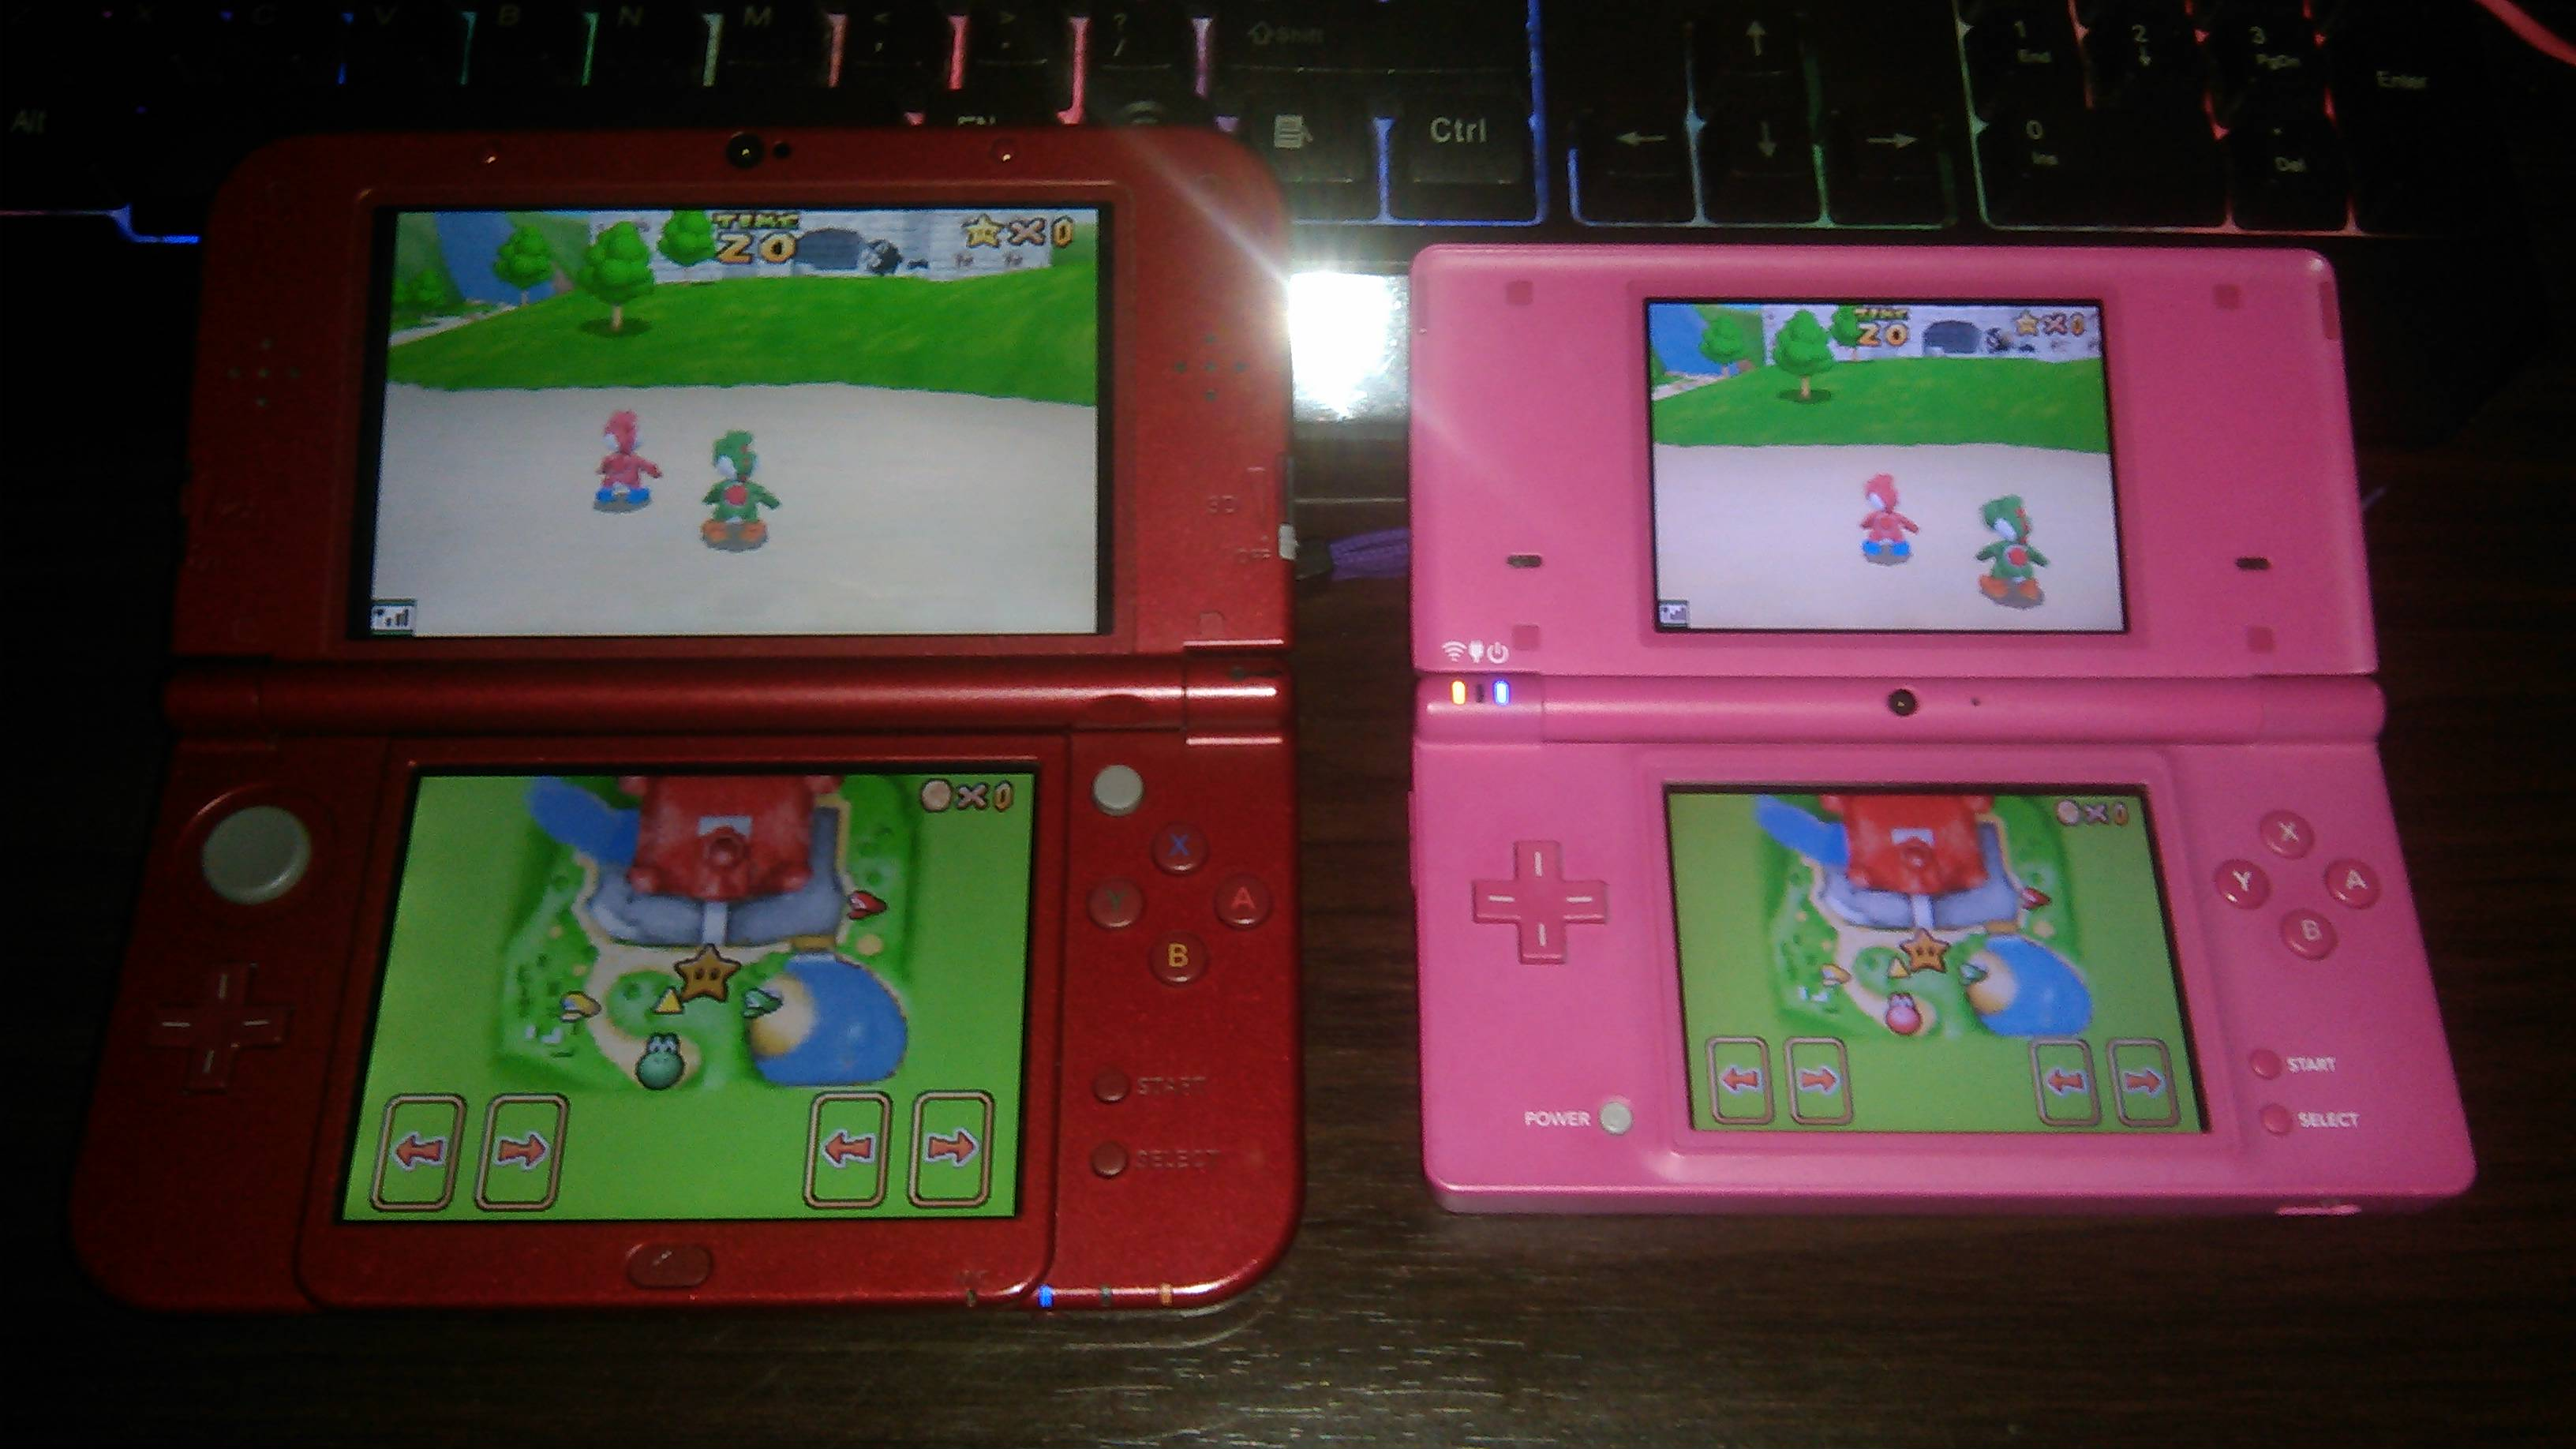 3Ds Future Releases news: developer starts to work on native resolution psp